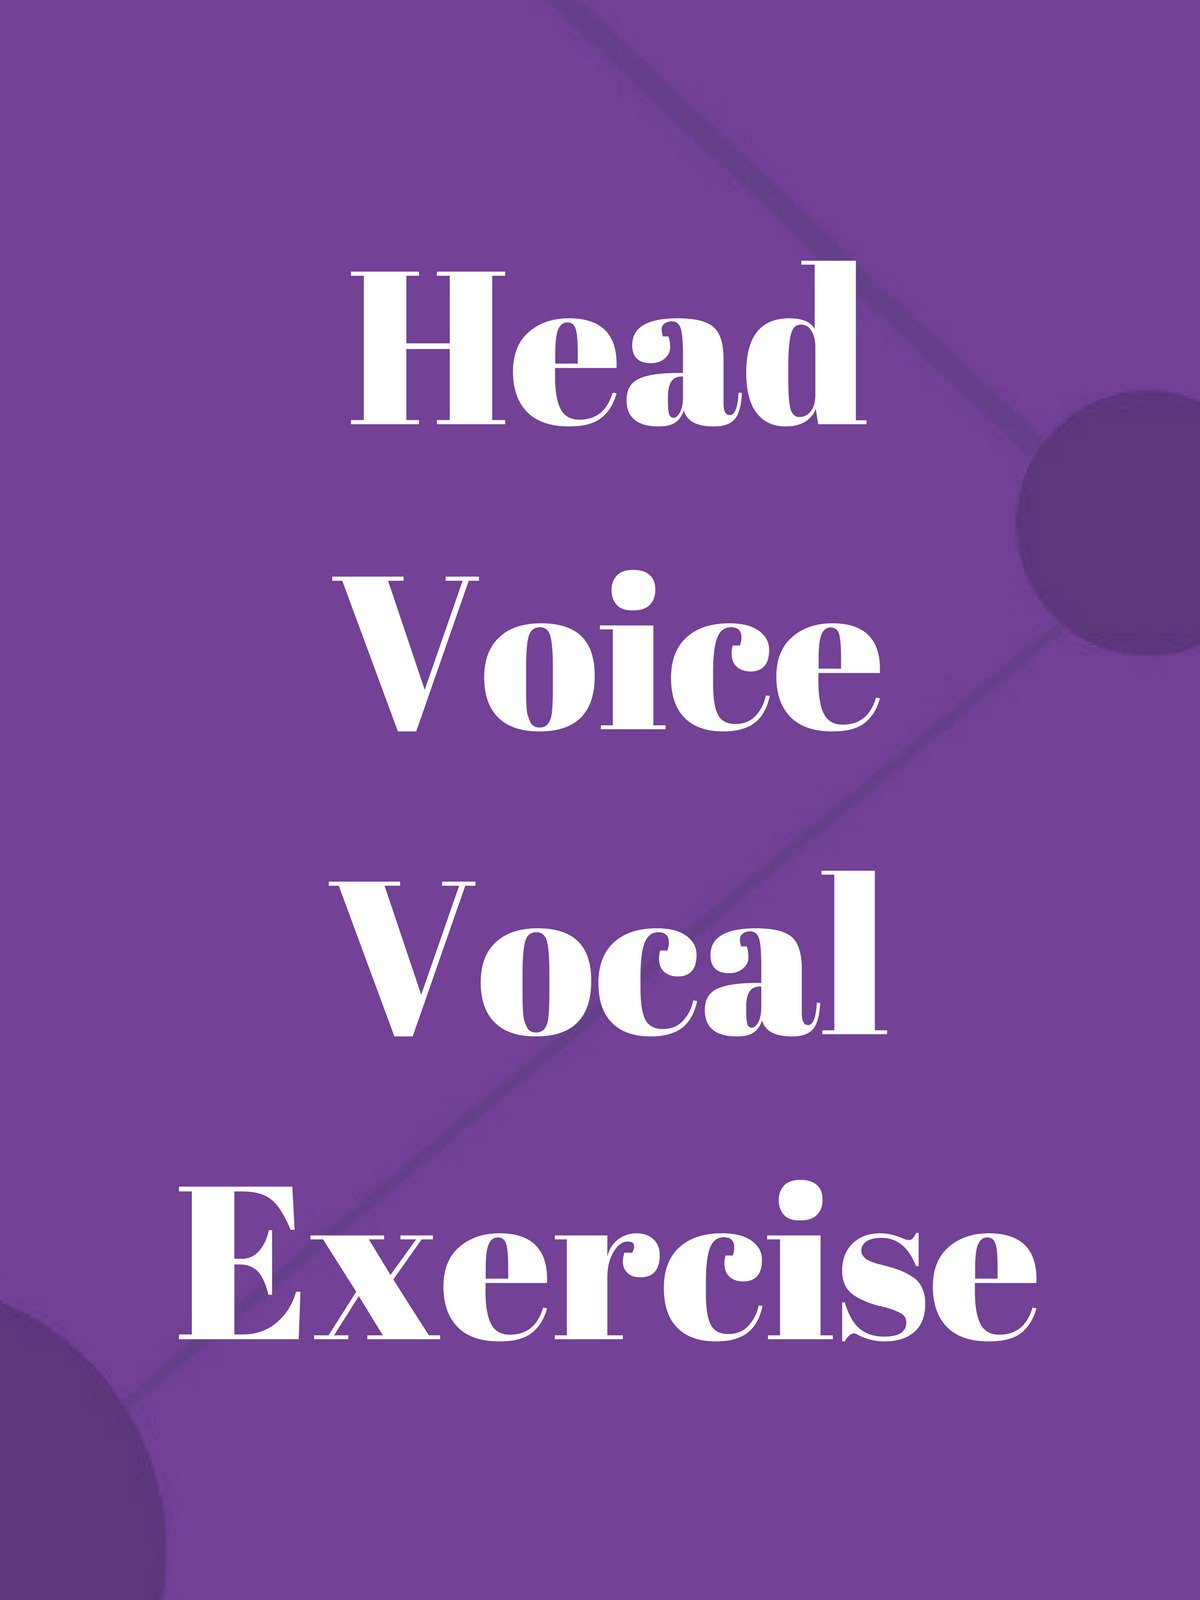 Head Voice Vocal Exercise